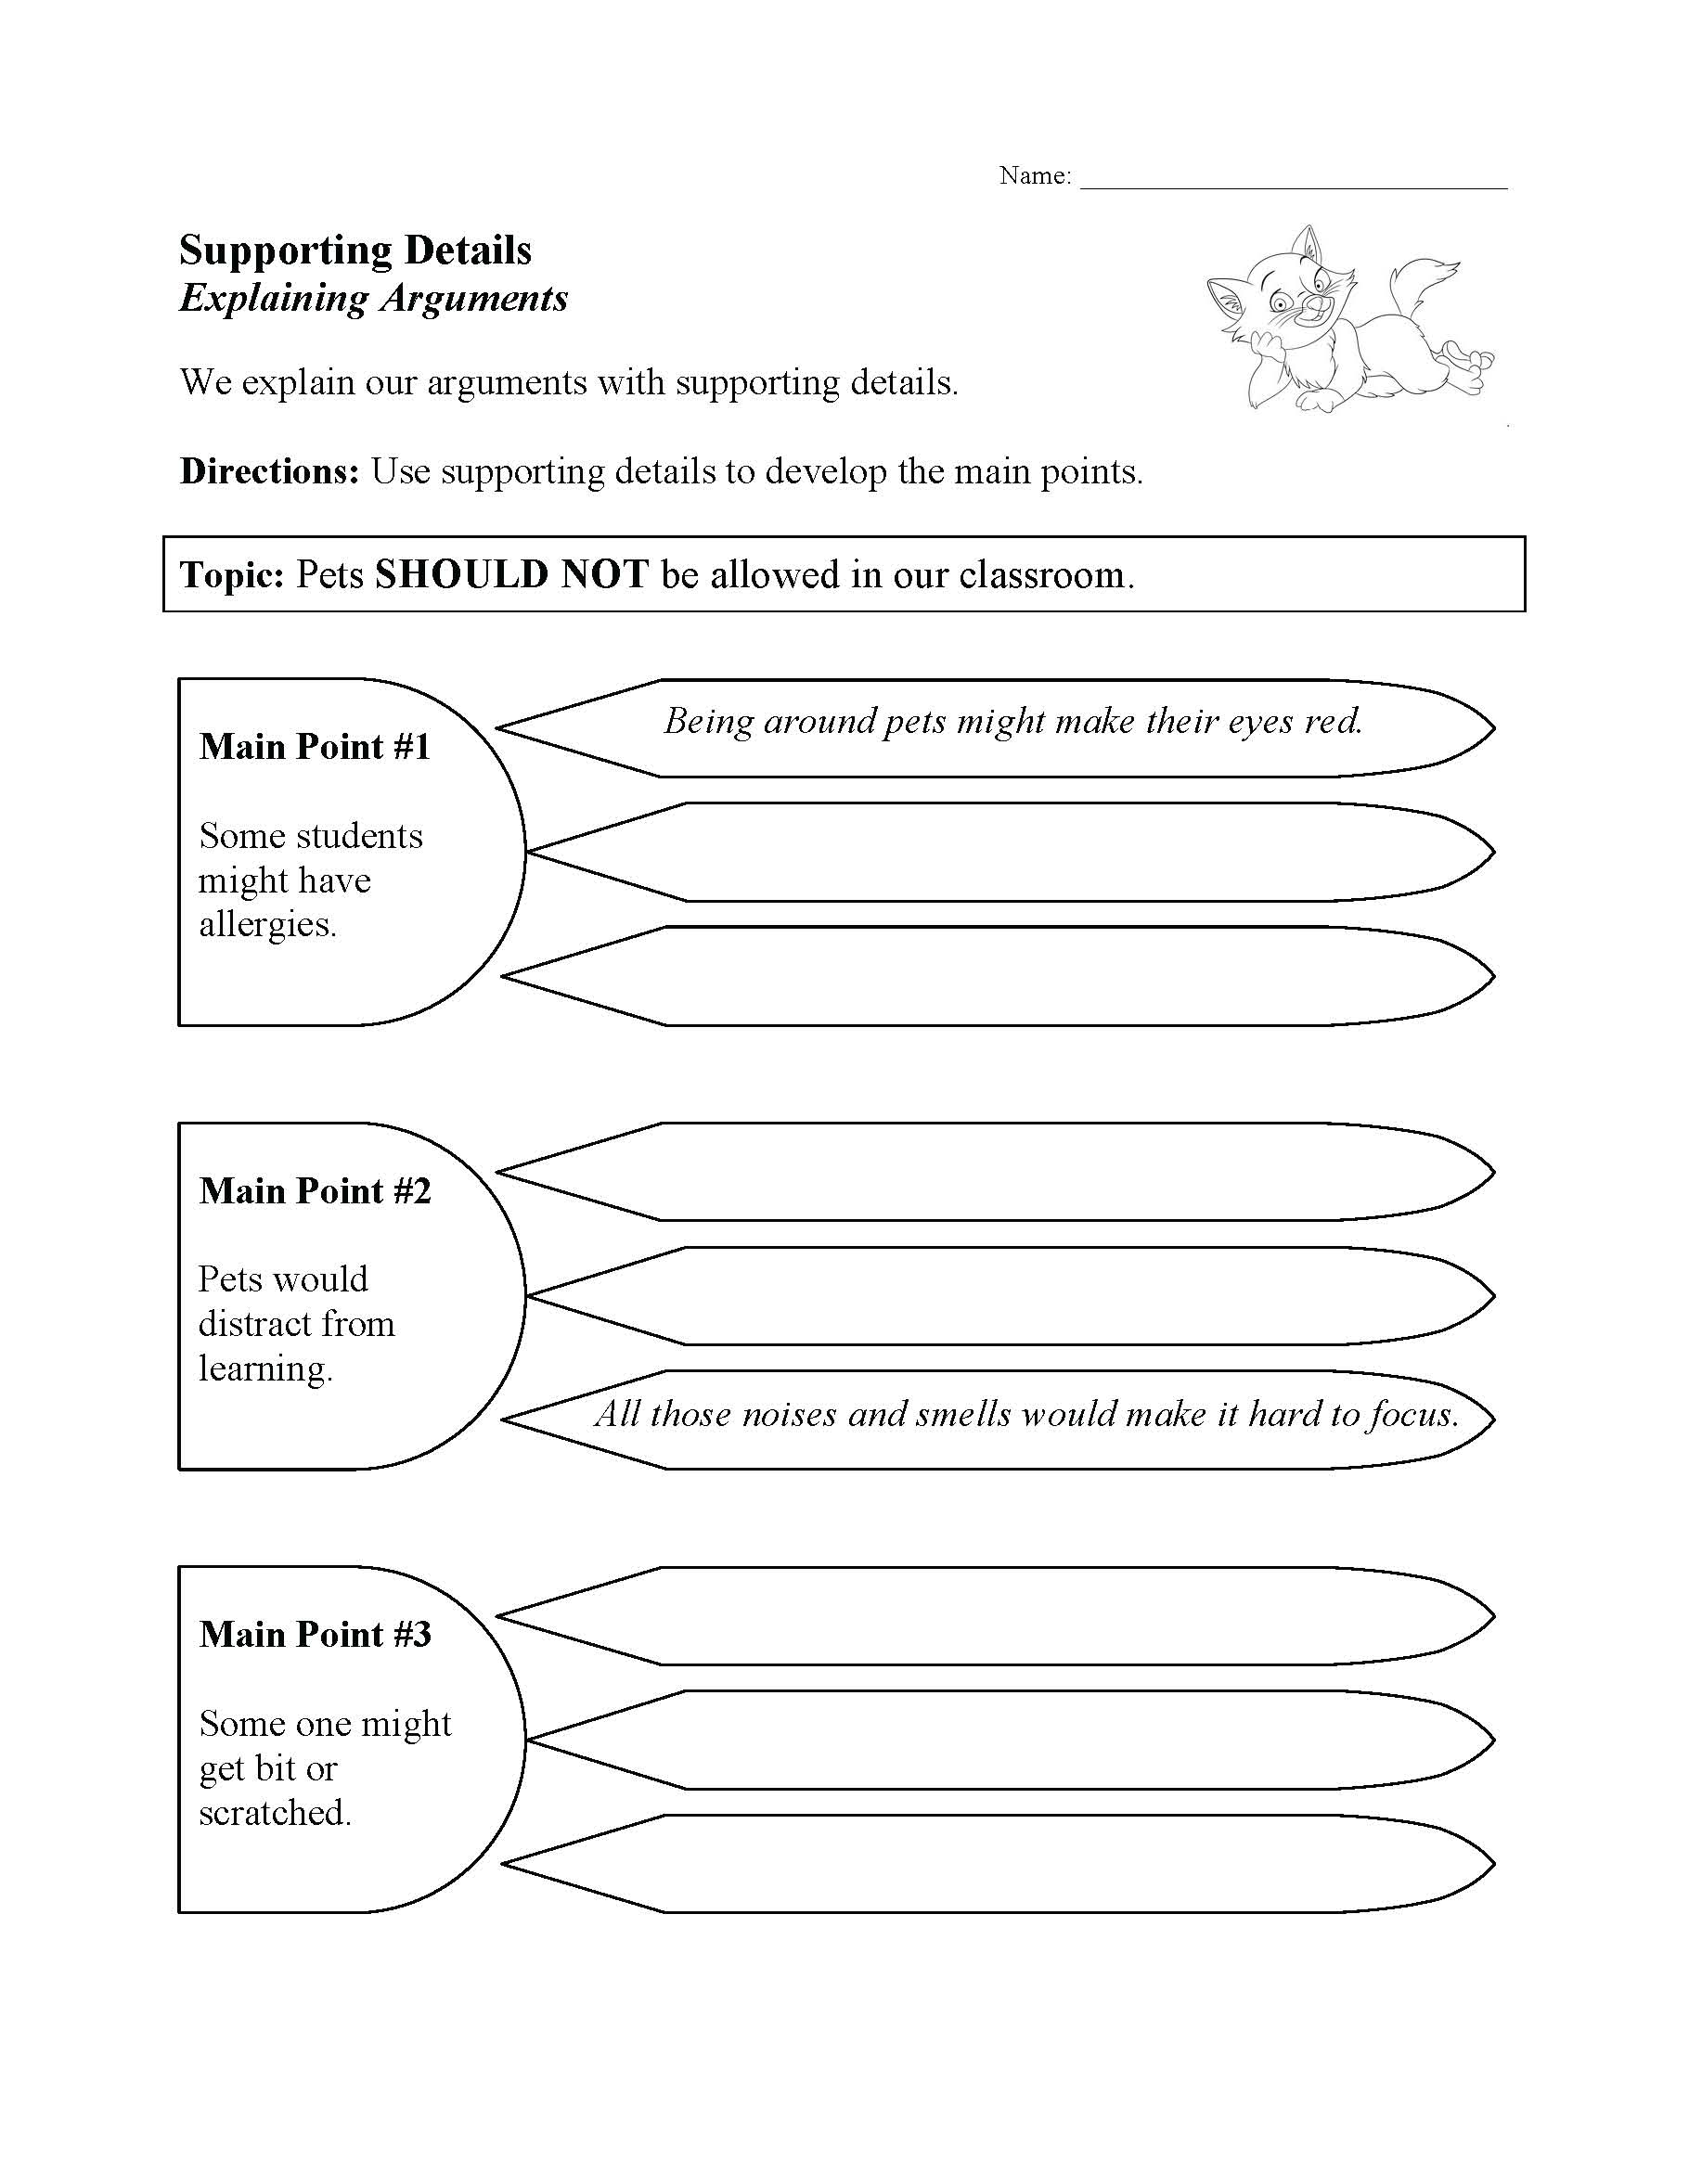 This is a preview image of our Supporting Details Worksheet. Click on it to enlarge this image and view the source file.